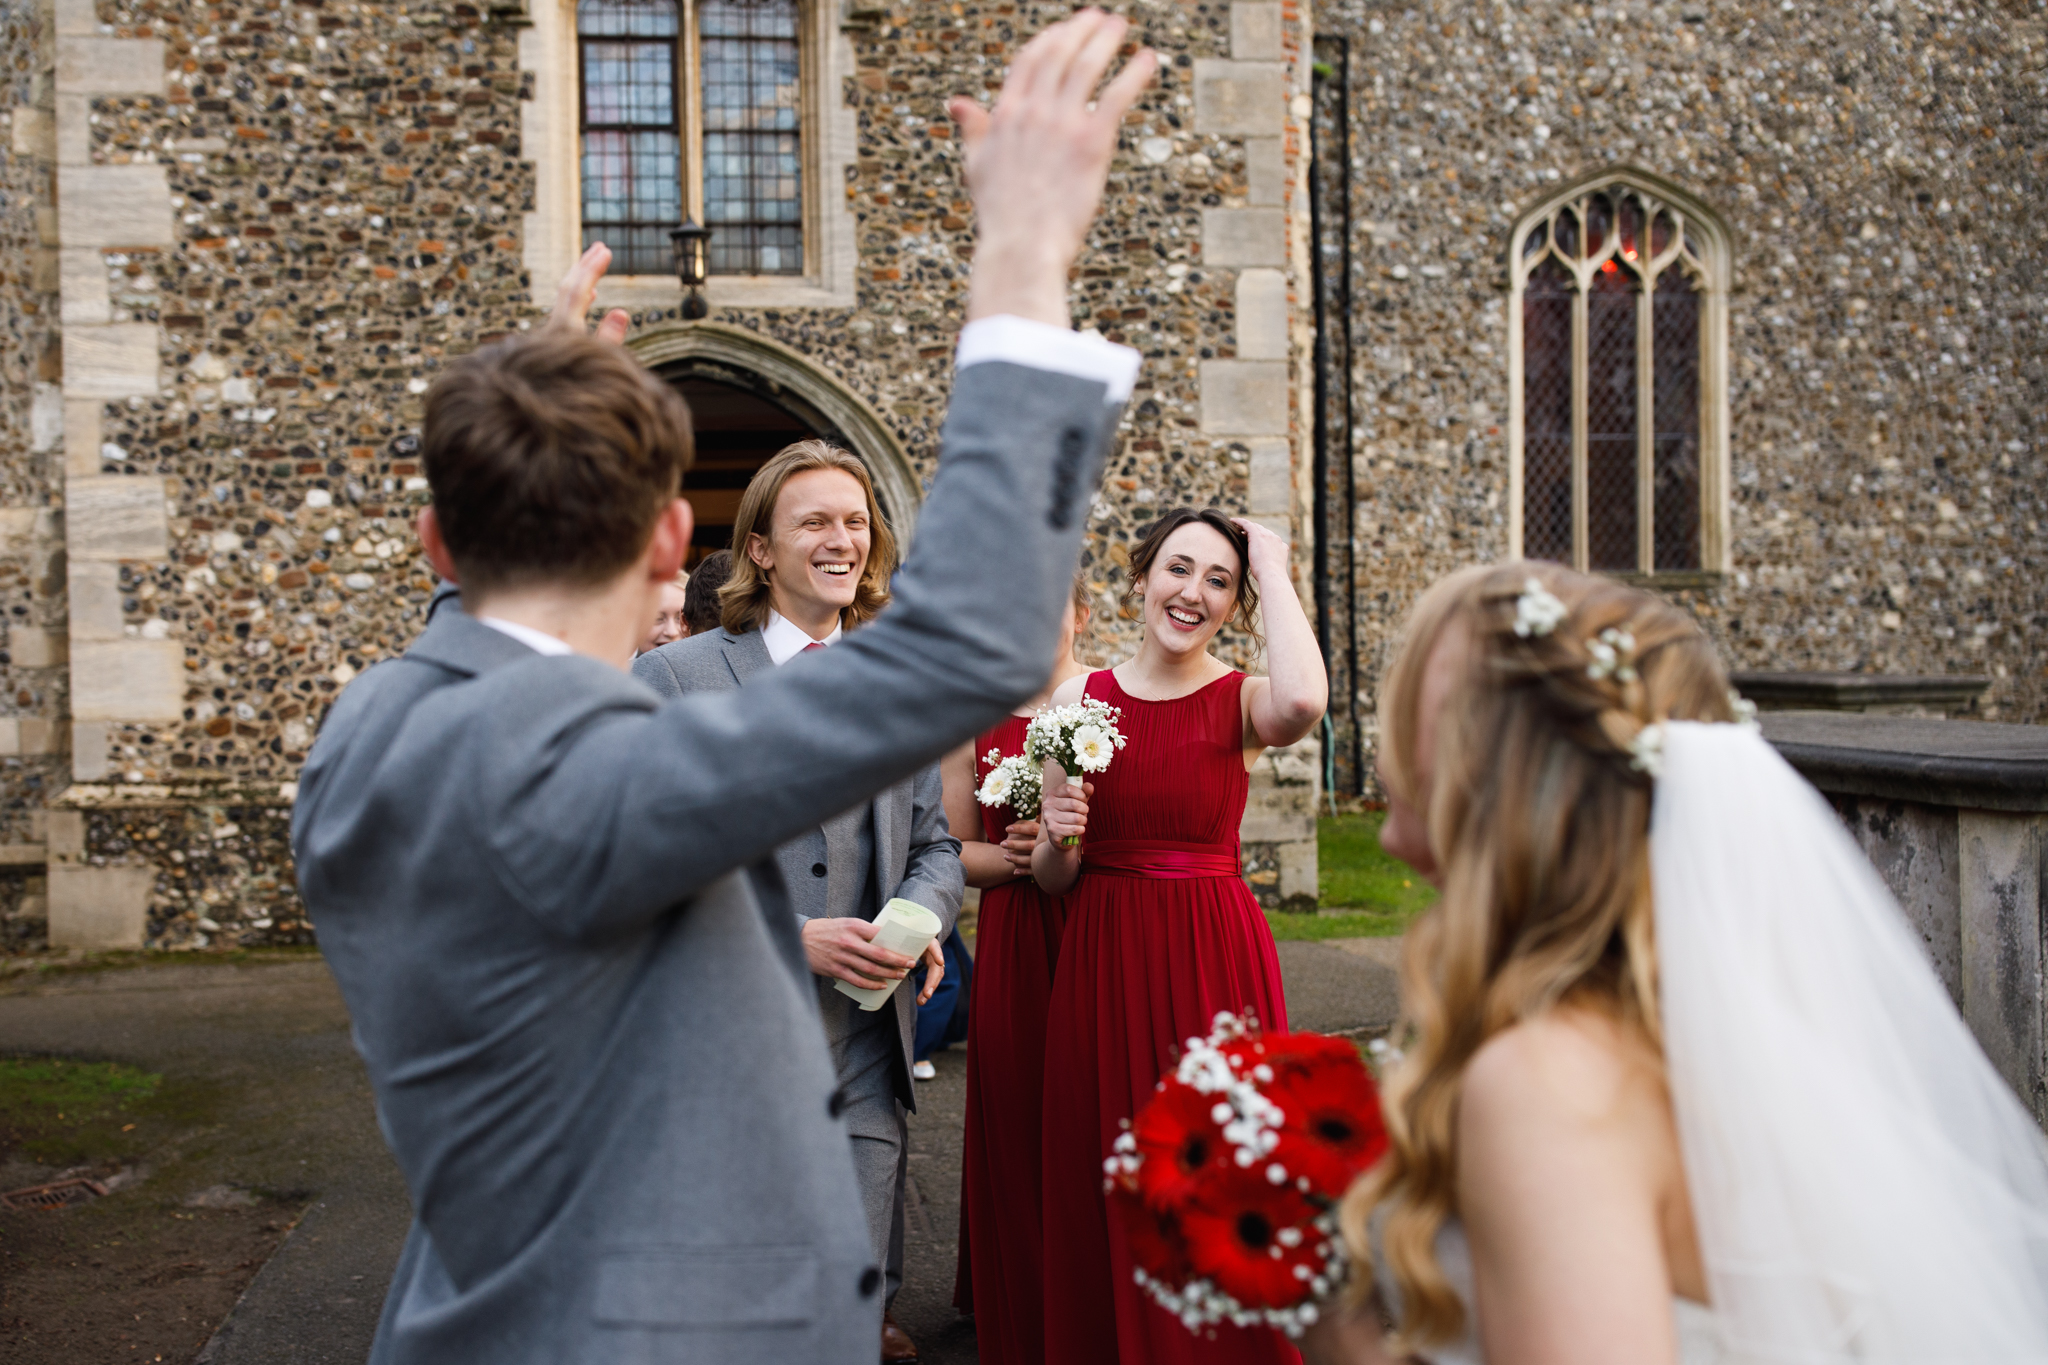 Jordan & Bekka's Wedding at Haughley Park Barn